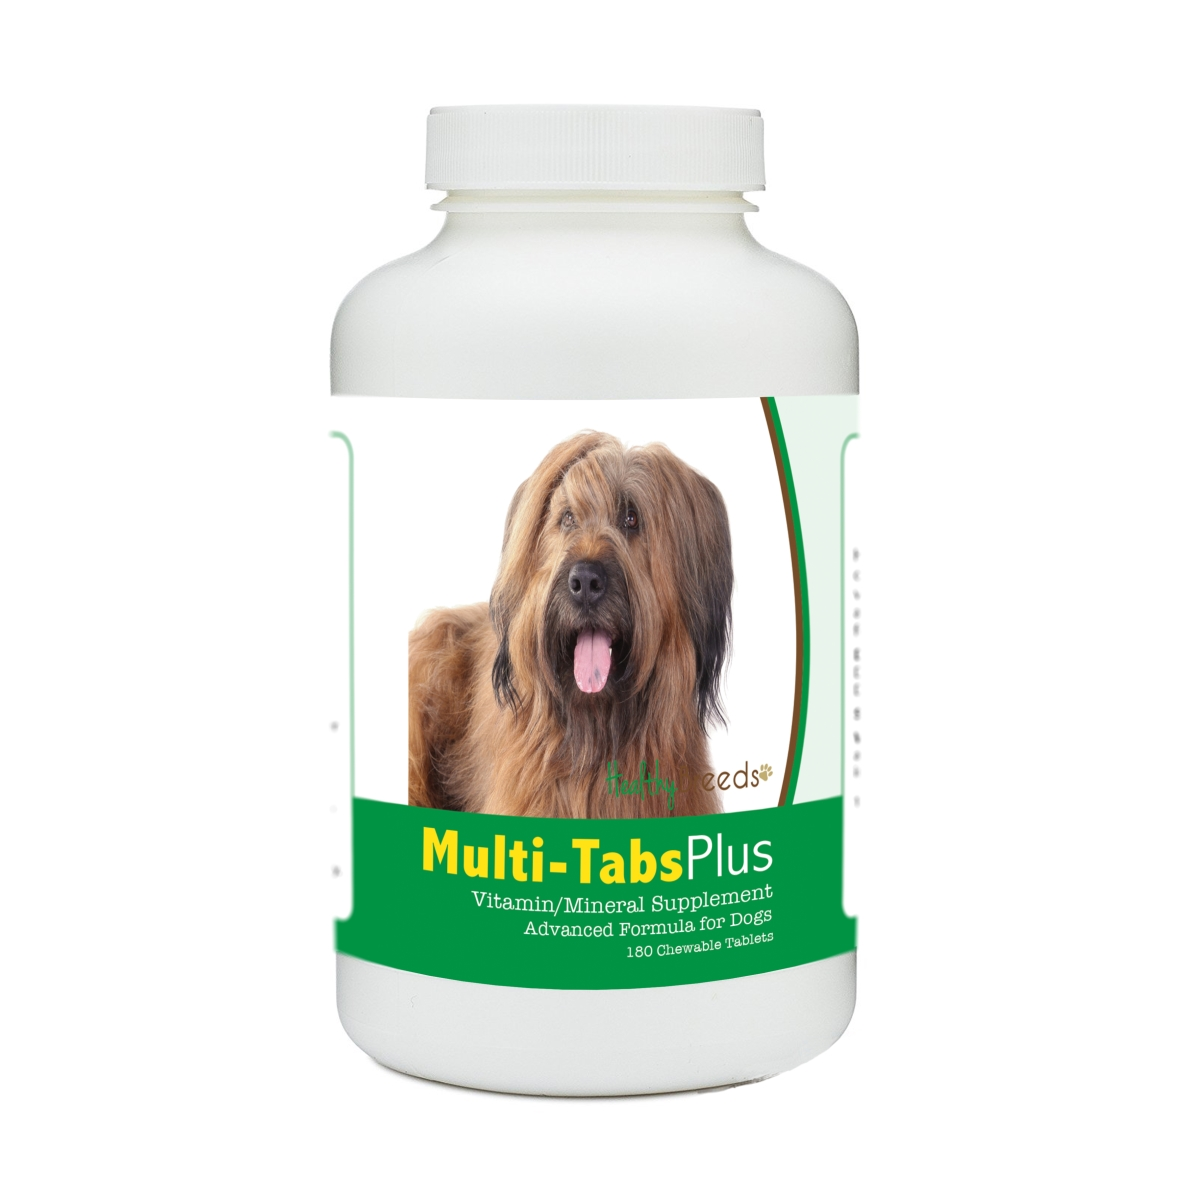 Healthy Breeds 840235180685 Briard Multi-Tabs Plus Chewable Tablets - 180 Count